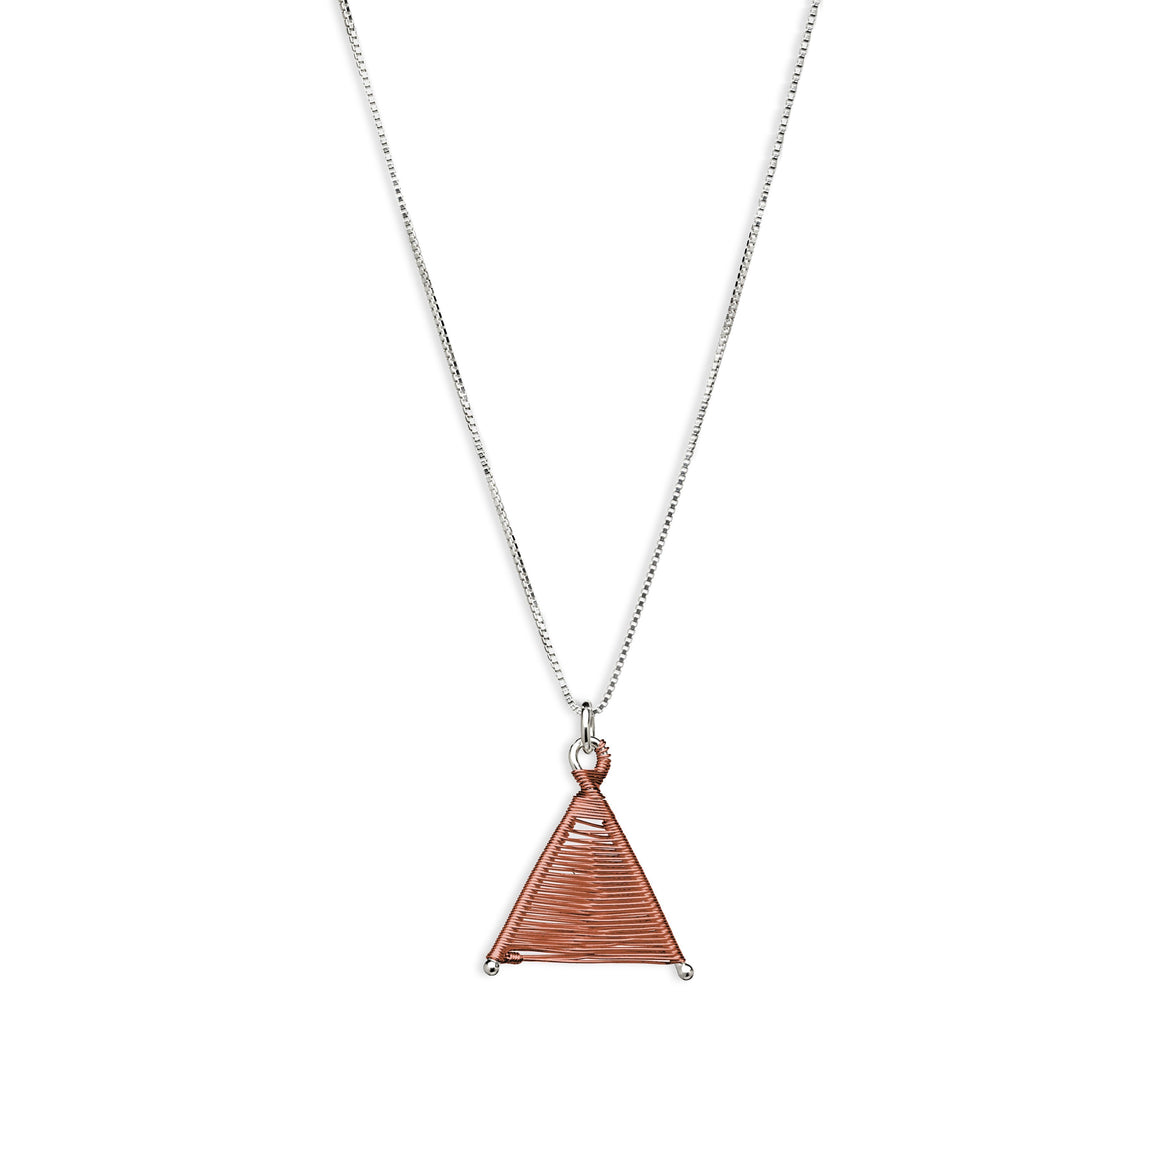 Tiny Woven Wishbone Antique Copper & Silver Necklace